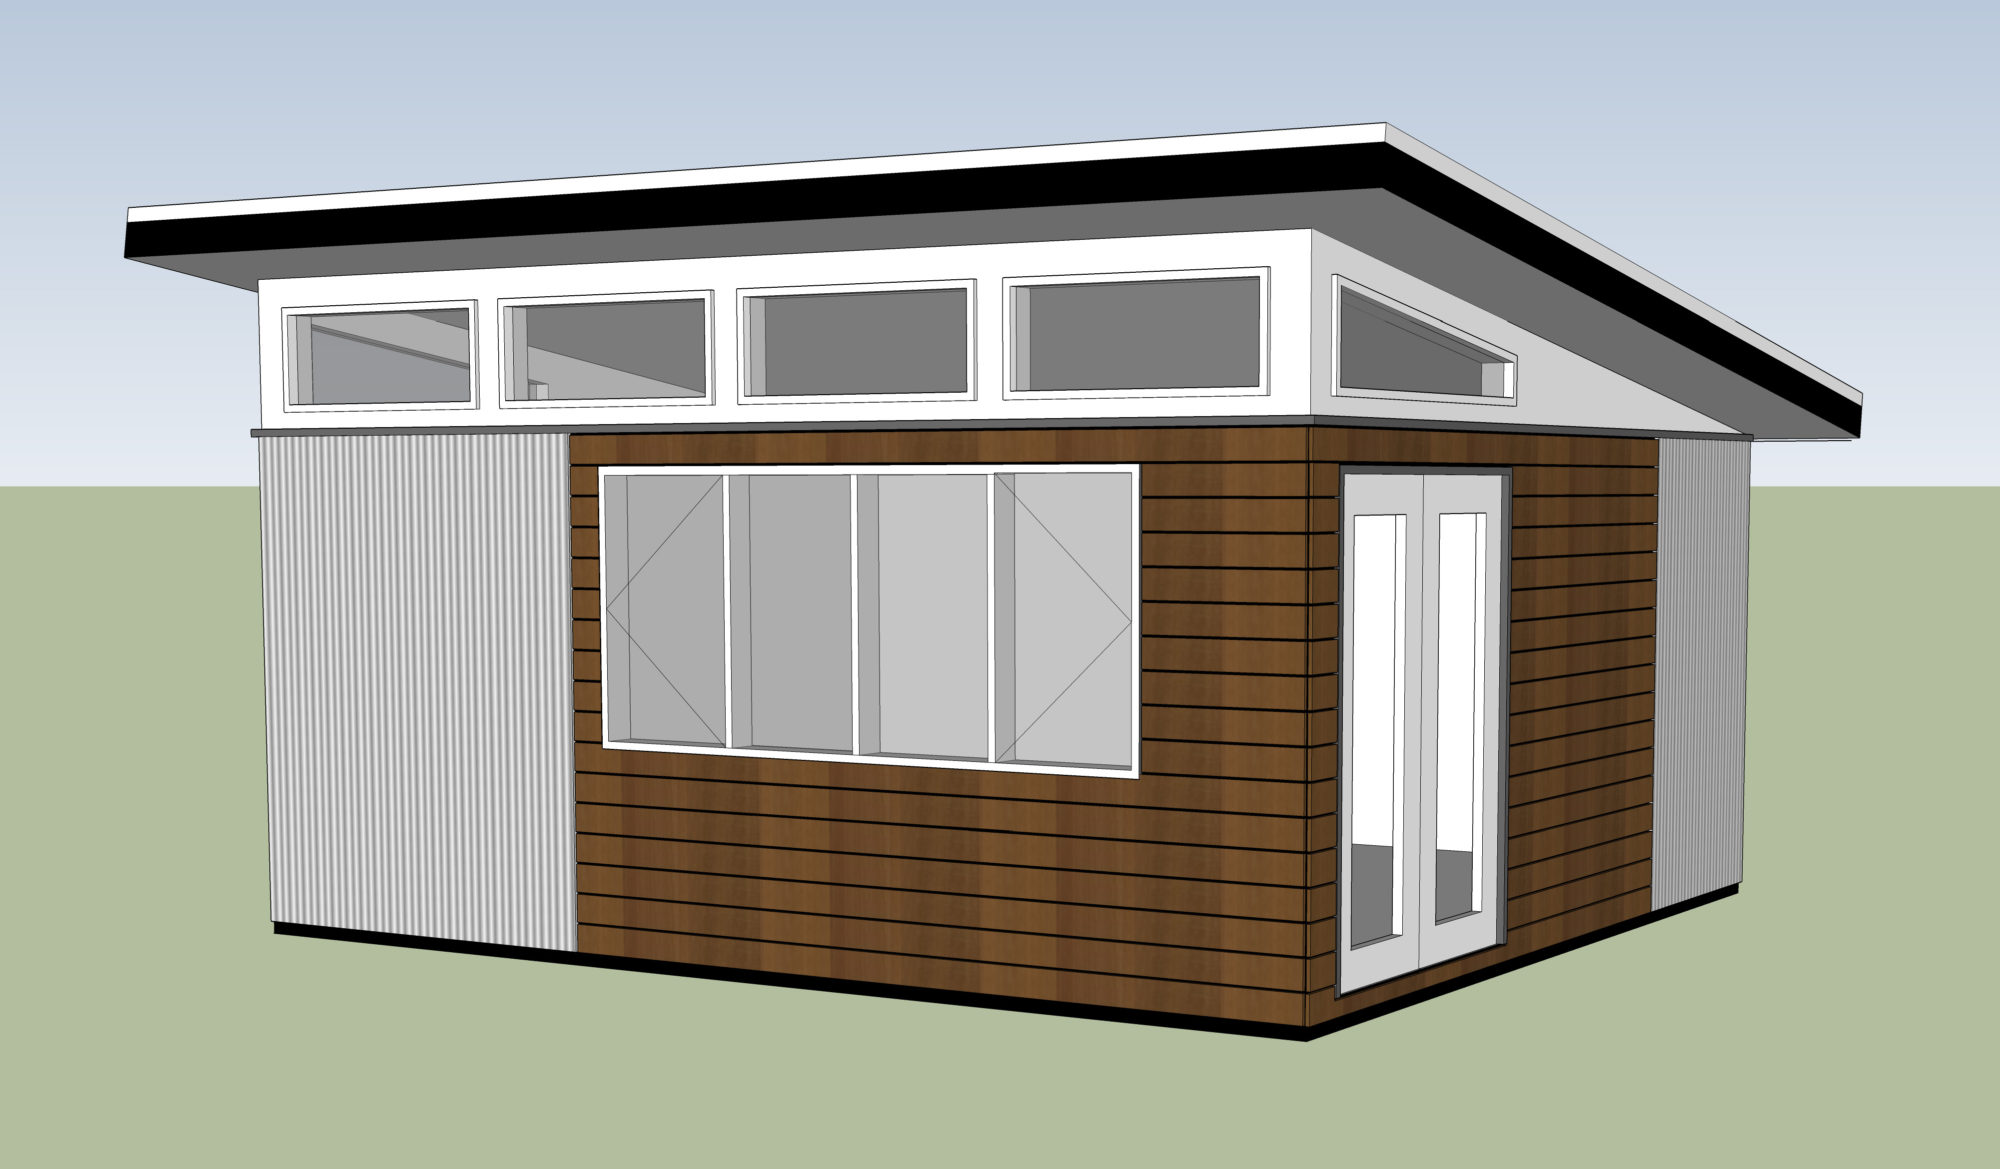 Prefab Laneway Houses 12x24 ModernShed Westcoast Outbuildings